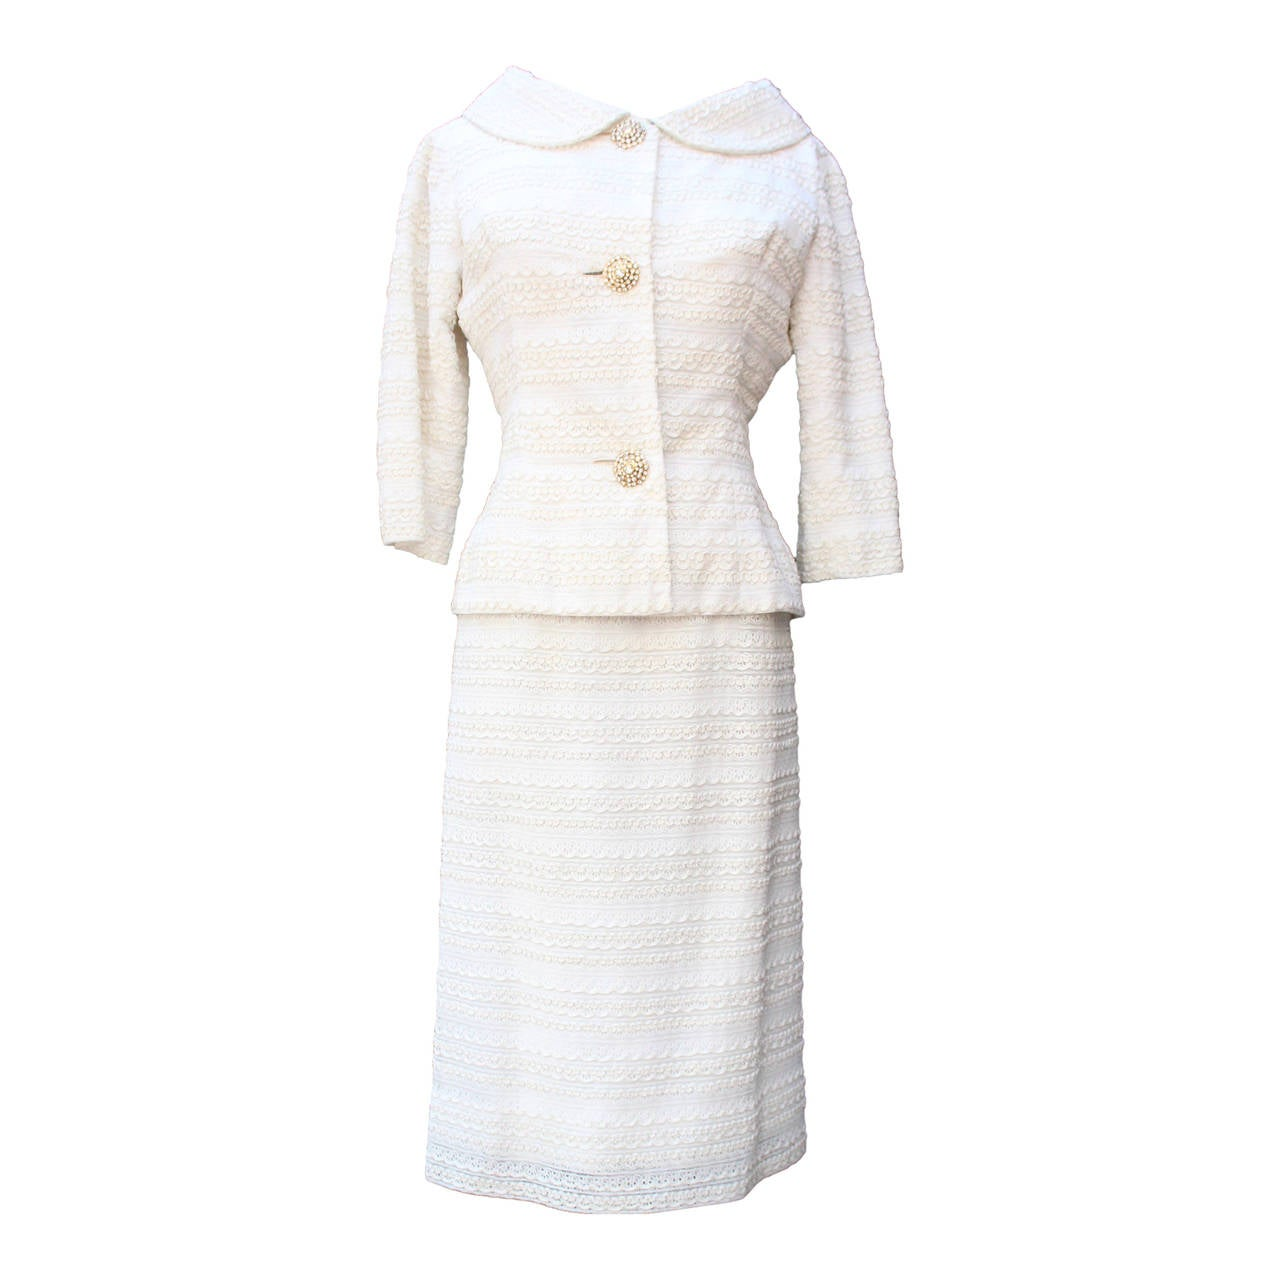 1961 Carven Haute Couture White Lace Dress and Jacket Ensemble For Sale